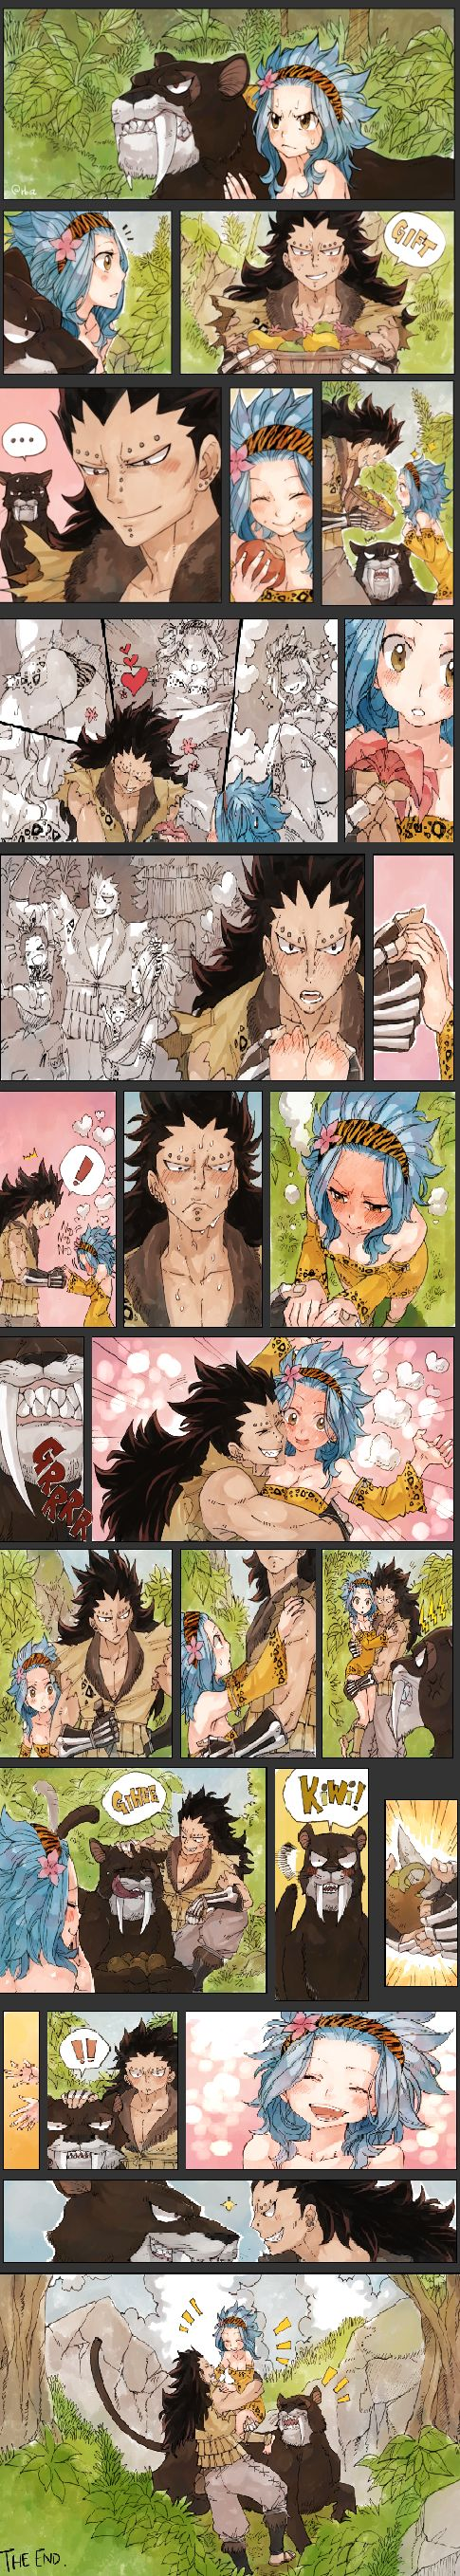 Stone Age - Gajevy Love Story